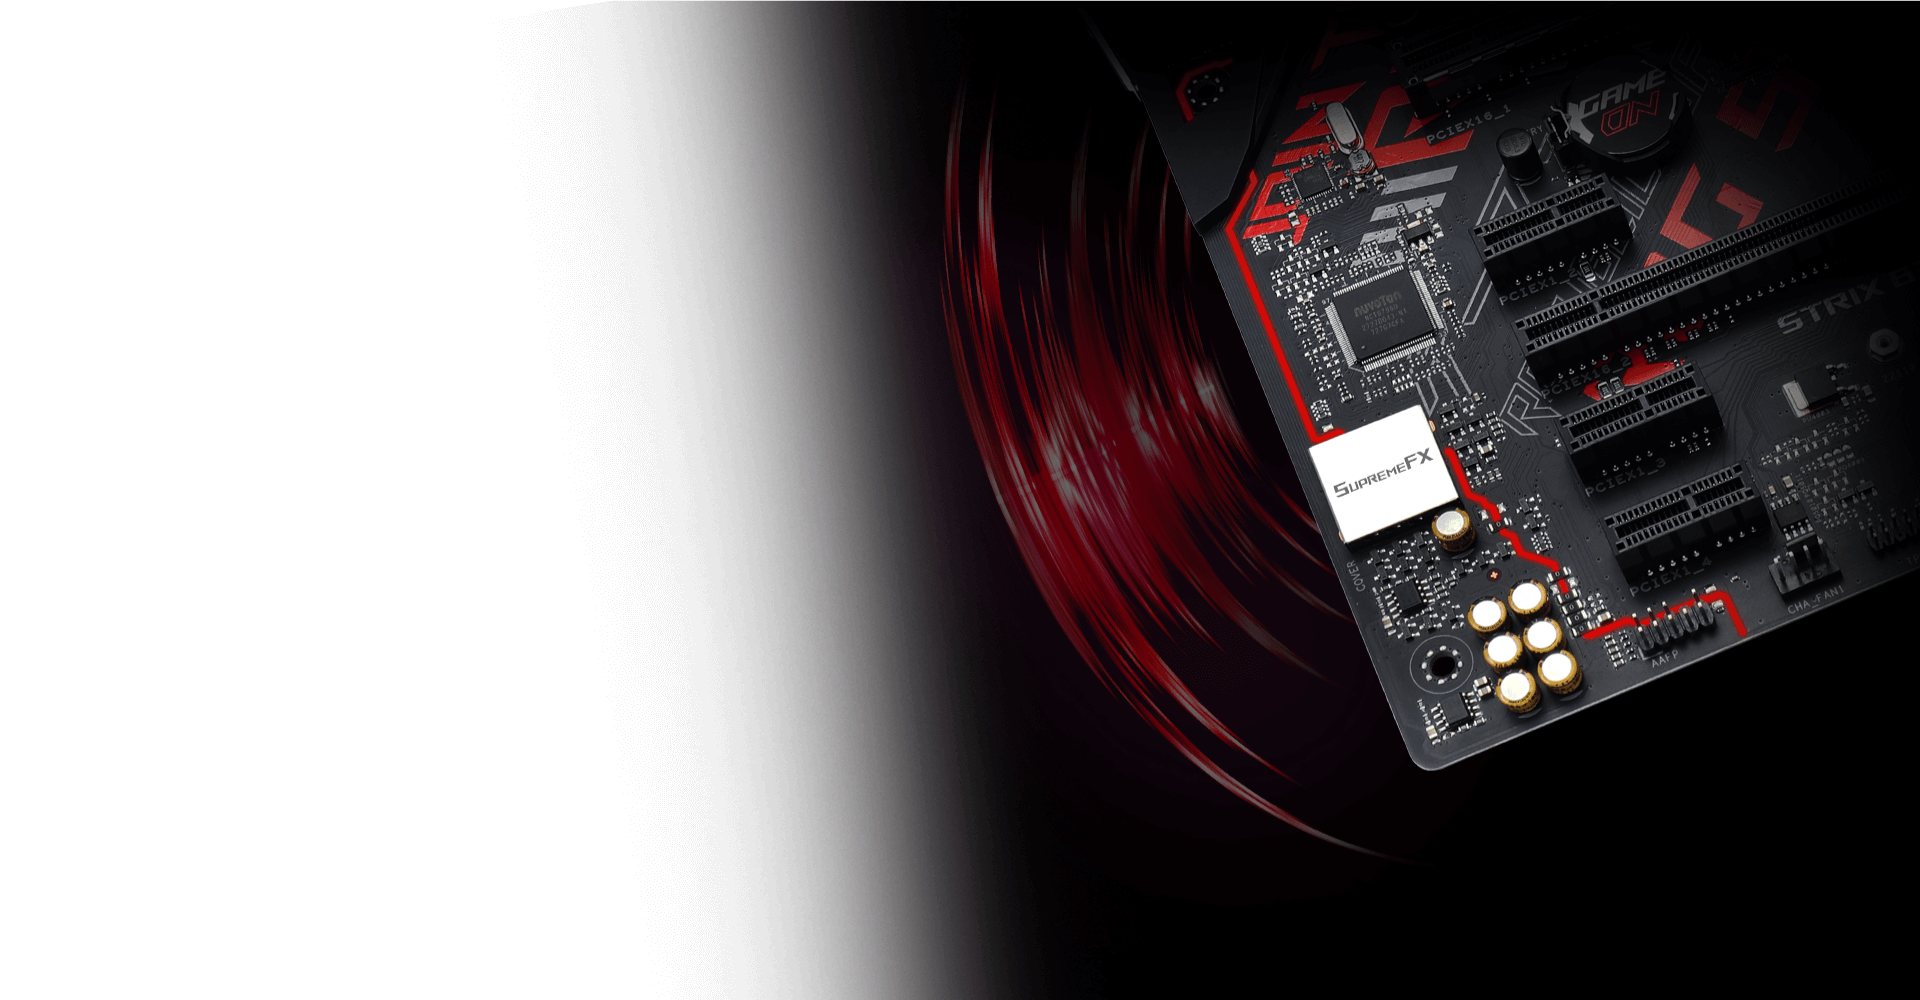 Rog Strix B360 H Gaming Motherboards Asus Usa Description Japanese Air Conditione Electrical Outletjpg High Quality Made Components Produce Warm Natural Audio With Exceptional Clarity And Fidelity